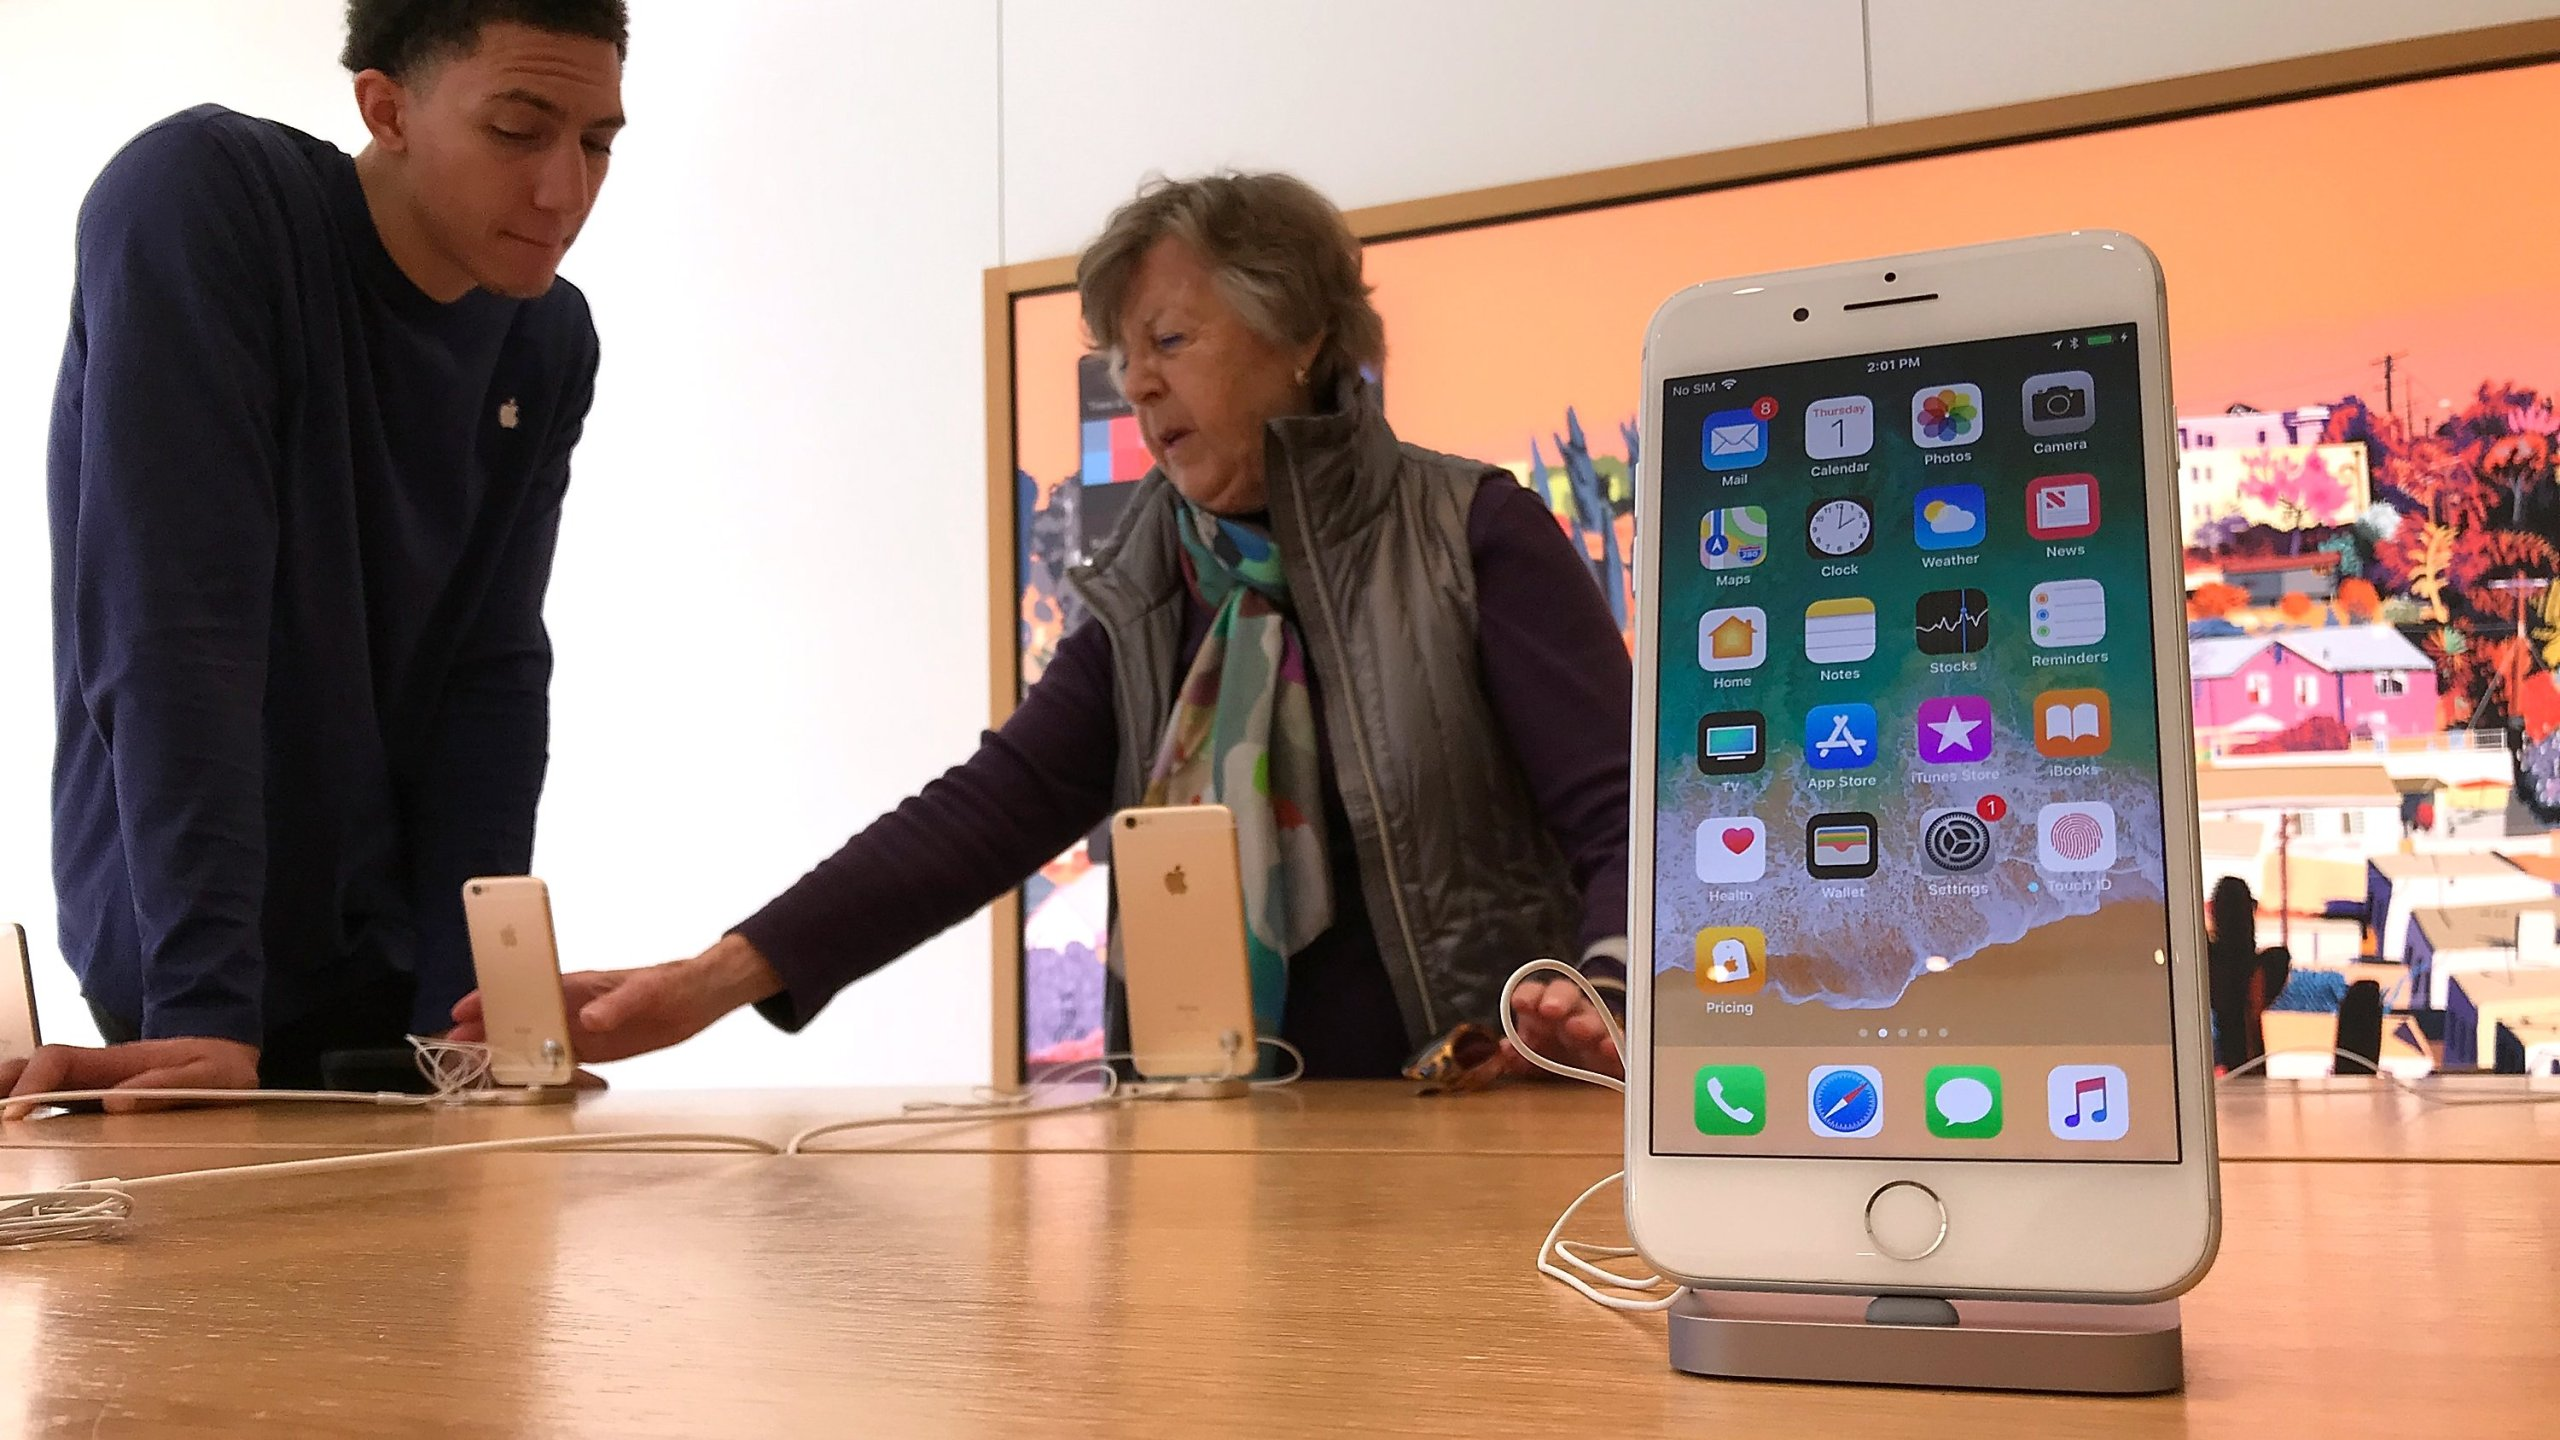 An iPhone is displayed at an Apple Store on Feb. 1, 2018 in Corte Madera, California. (Credit: Justin Sullivan/Getty Images)